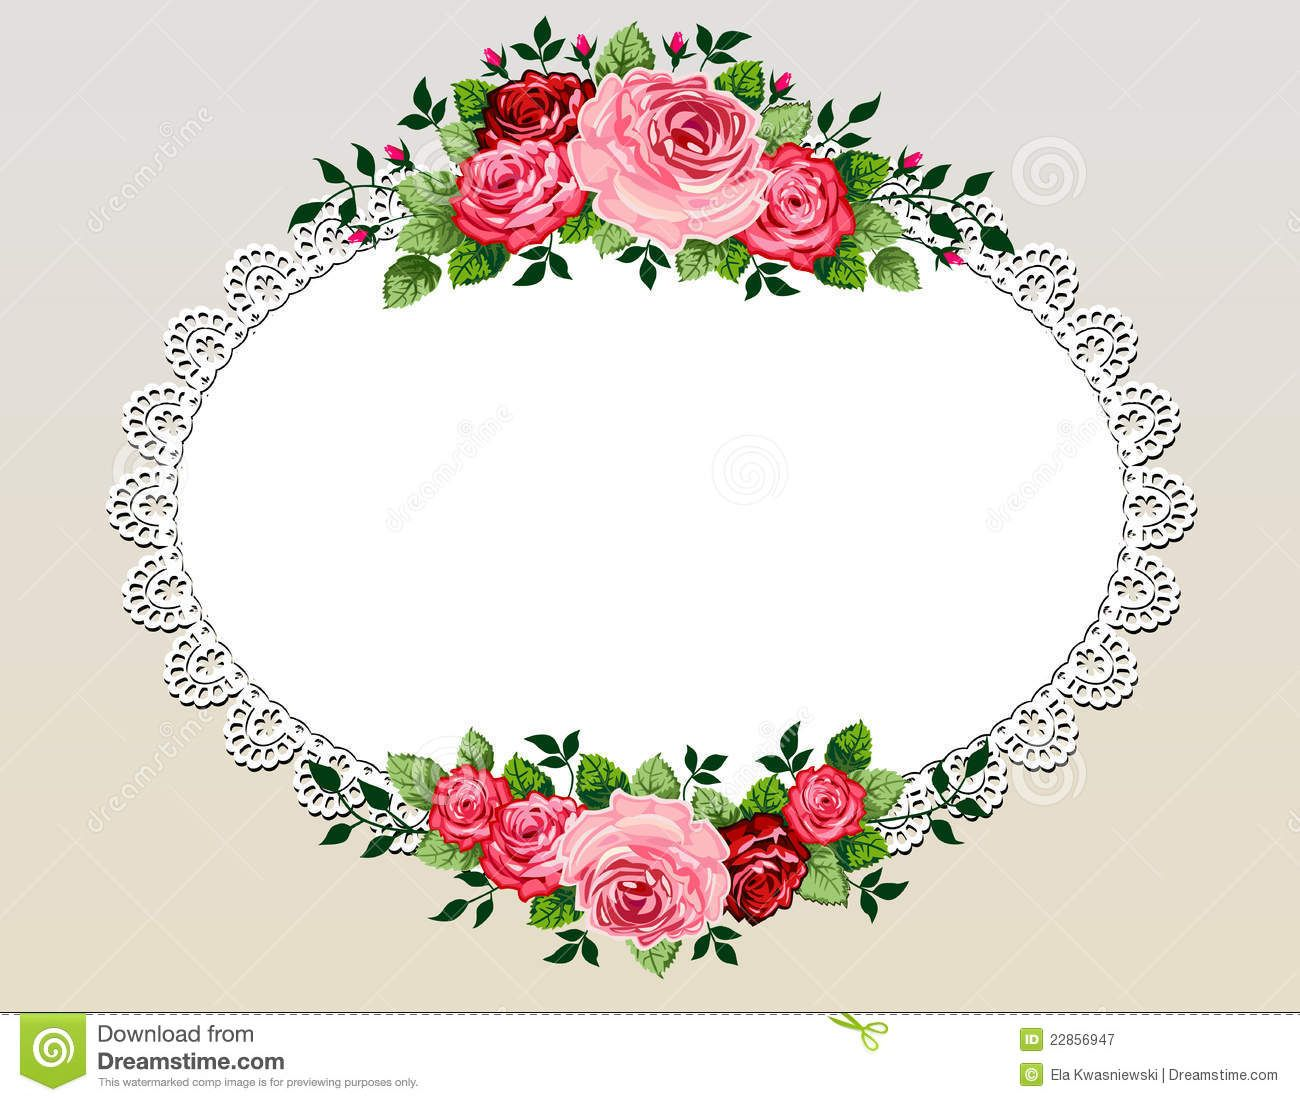 Vintage Roses Bouquet Frame Royalty Free Stock Photography